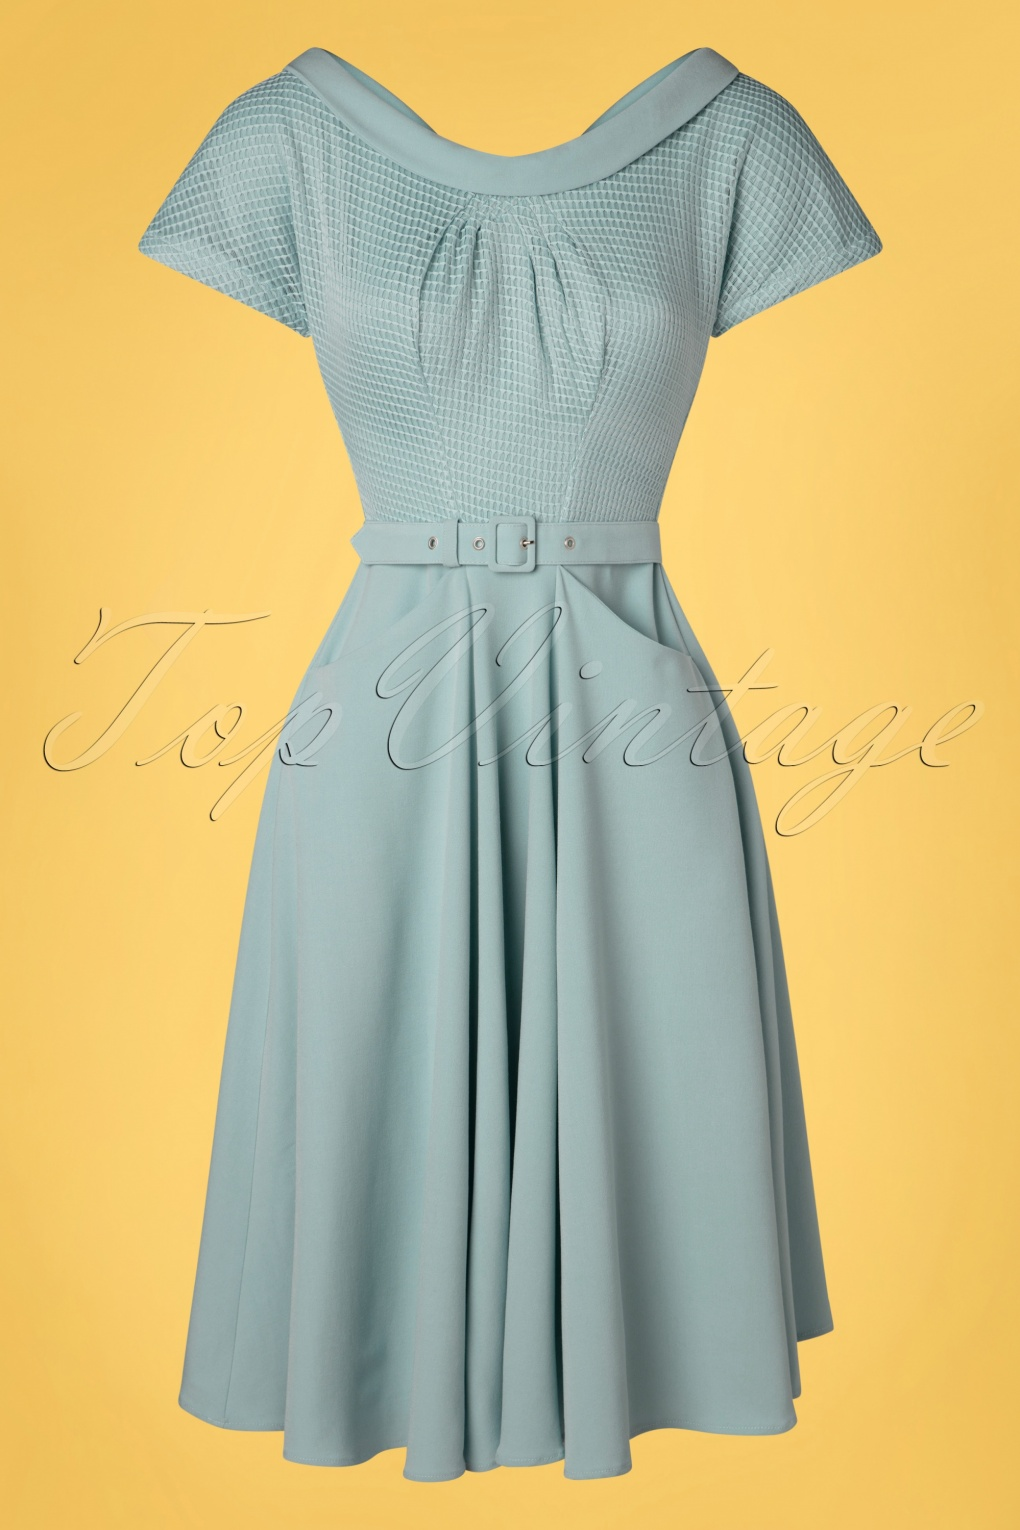 1950s Inspired Fashion: Recreate the Look 50s Lorin Minty Swing Dress in Ice Blue £19.95 AT vintagedancer.com